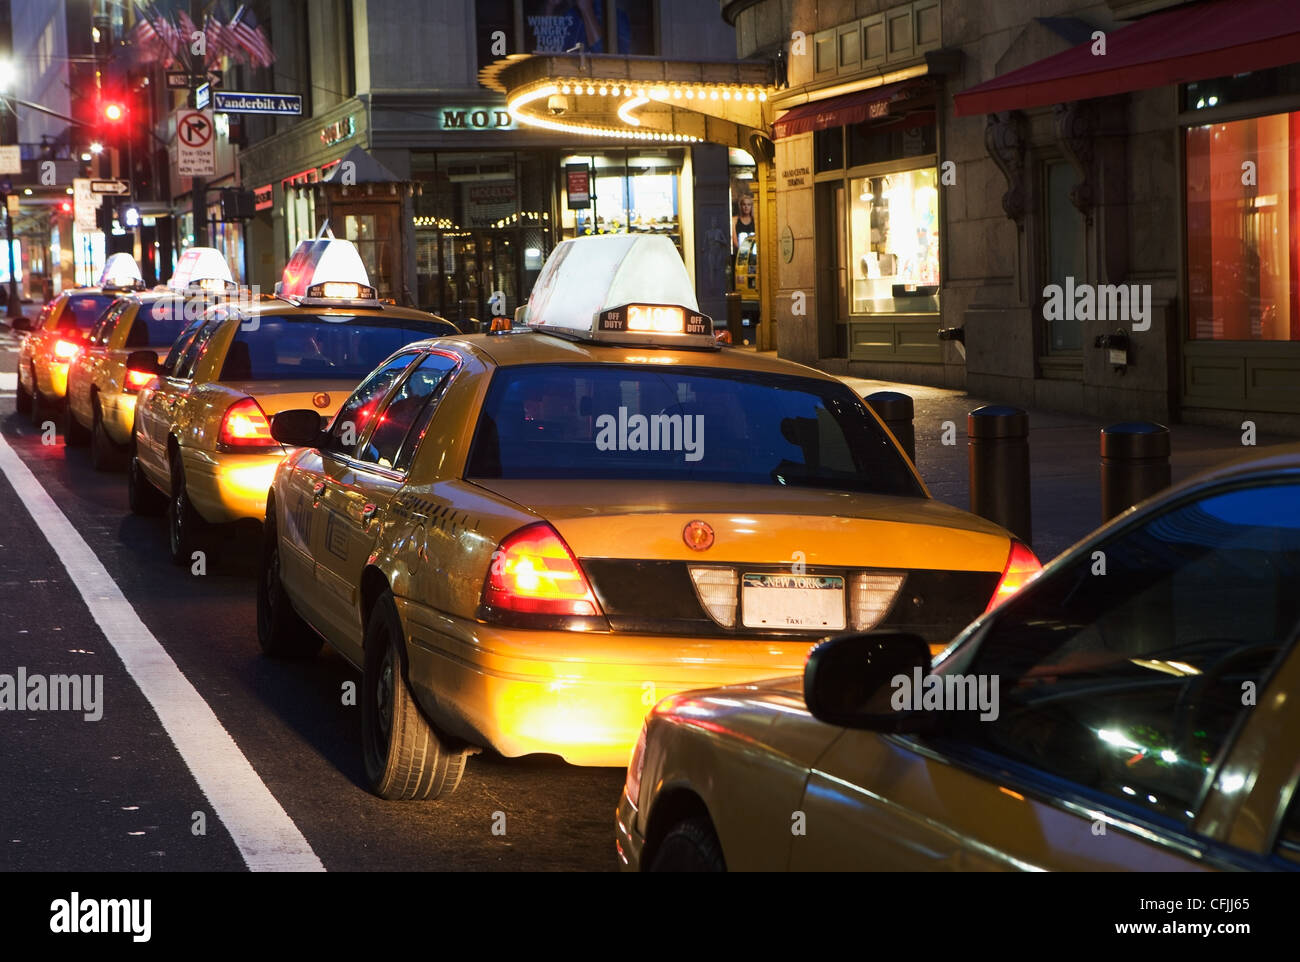 Queue of taxi cabs in New York City, USA - Stock Image